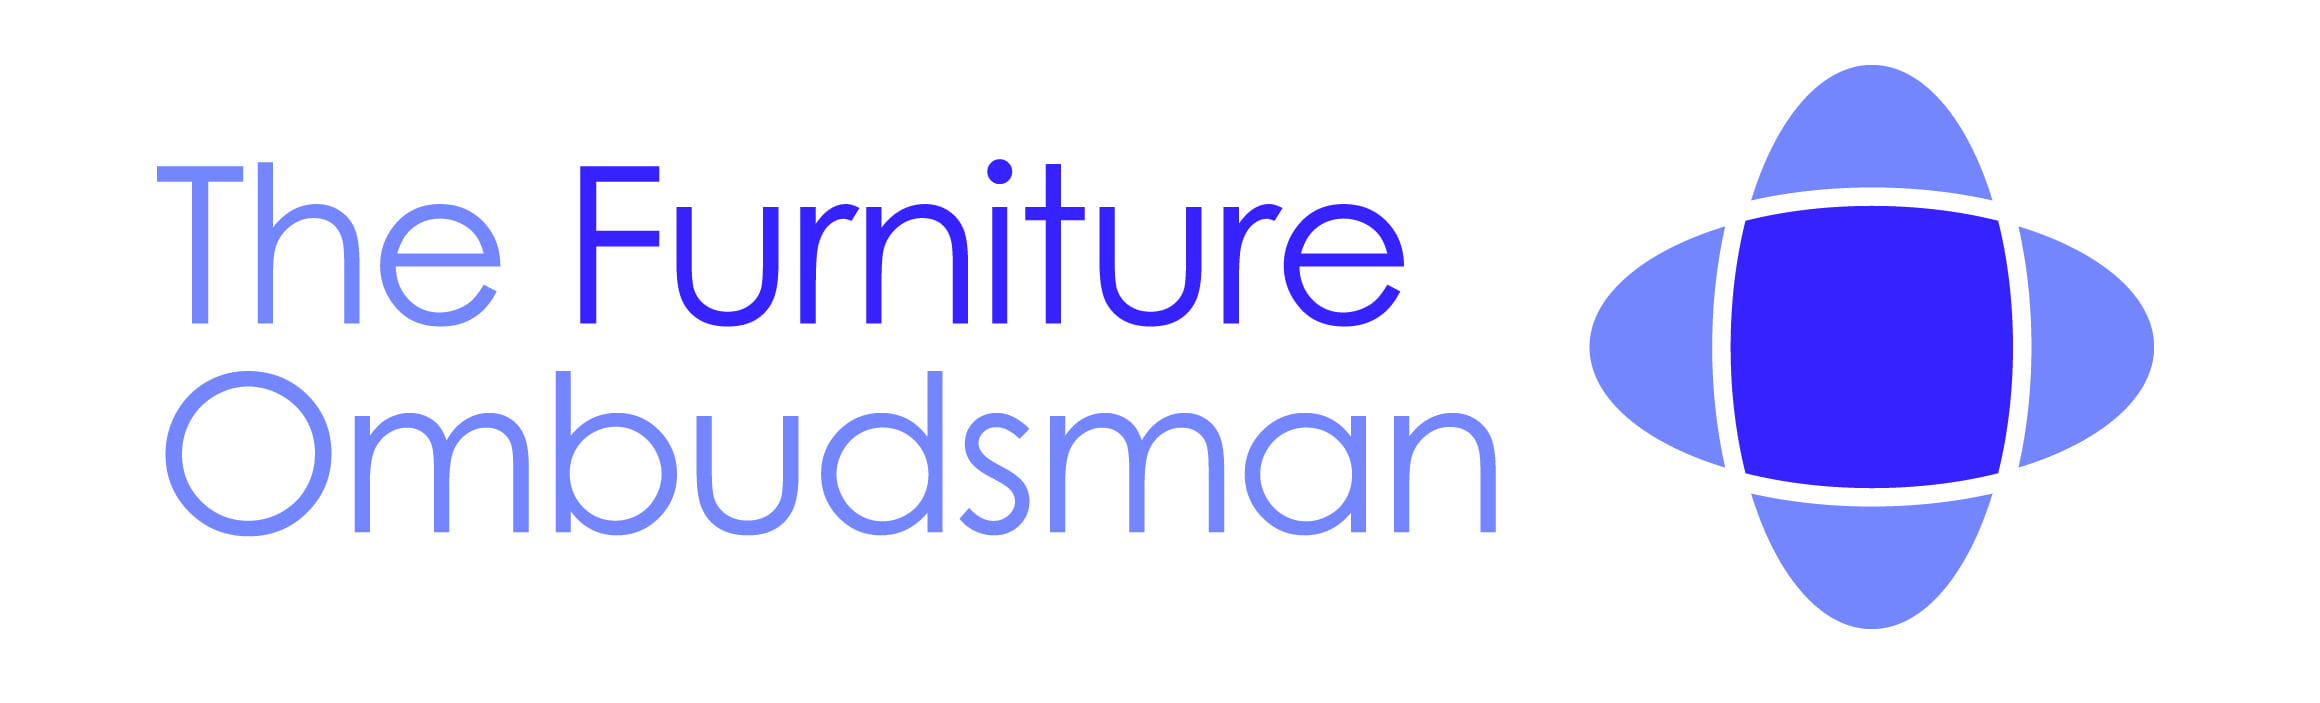 Fox moving industry certification page for Furniture ombudsman